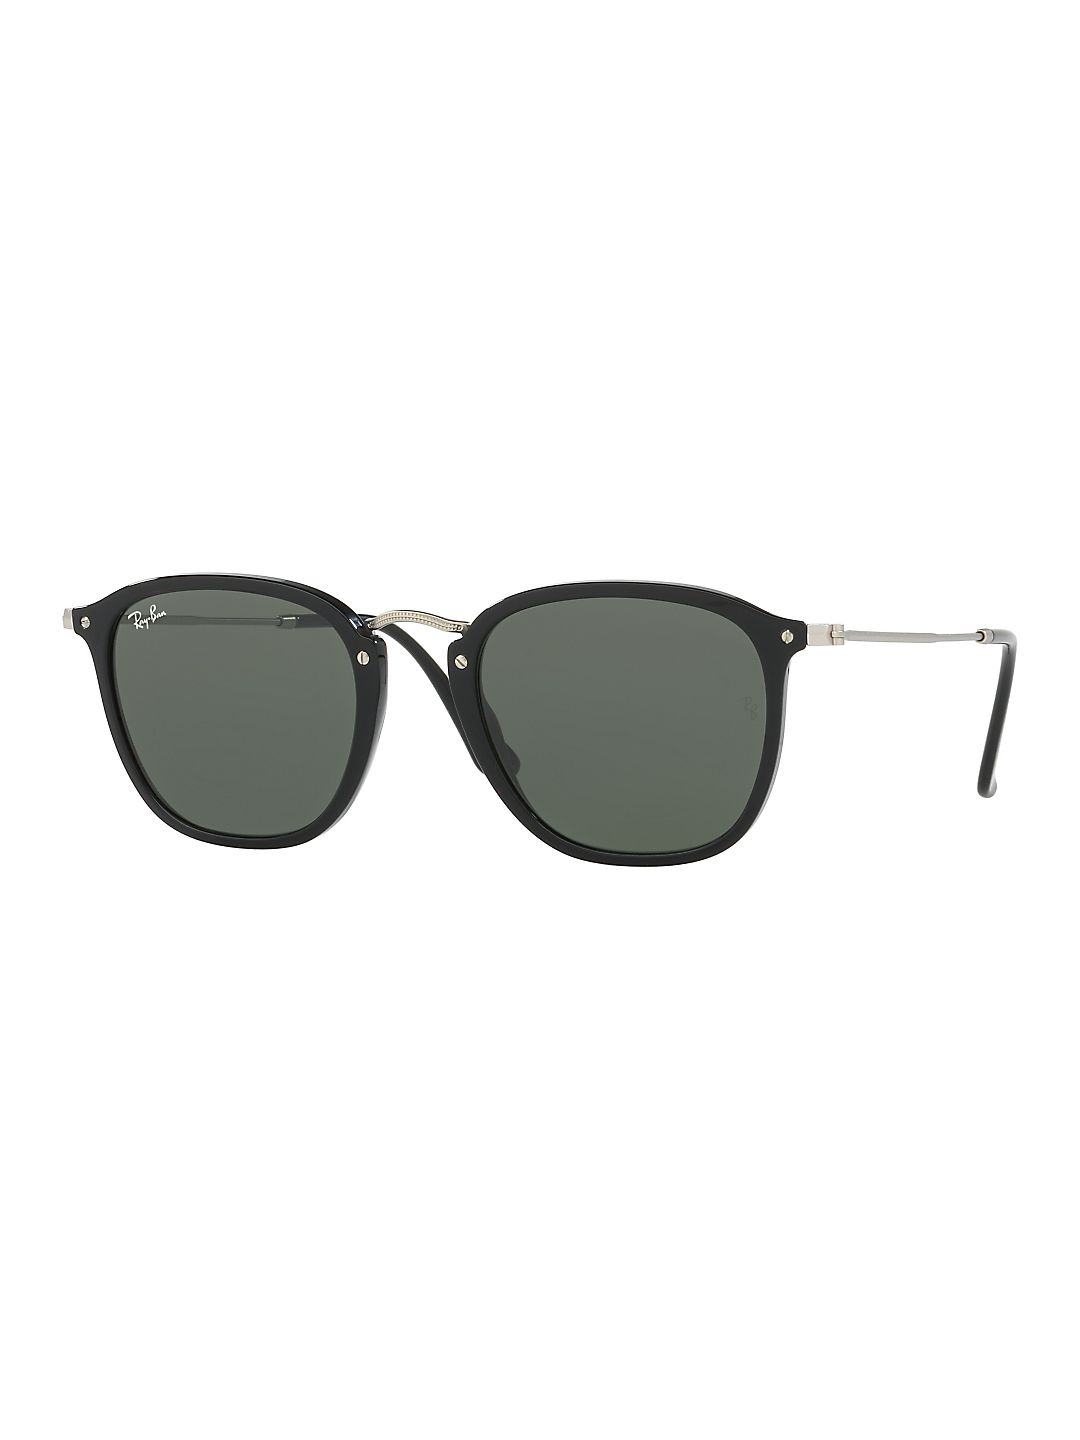 Ray-Ban Unisex RB2448N Square Sunglasses, 51mm